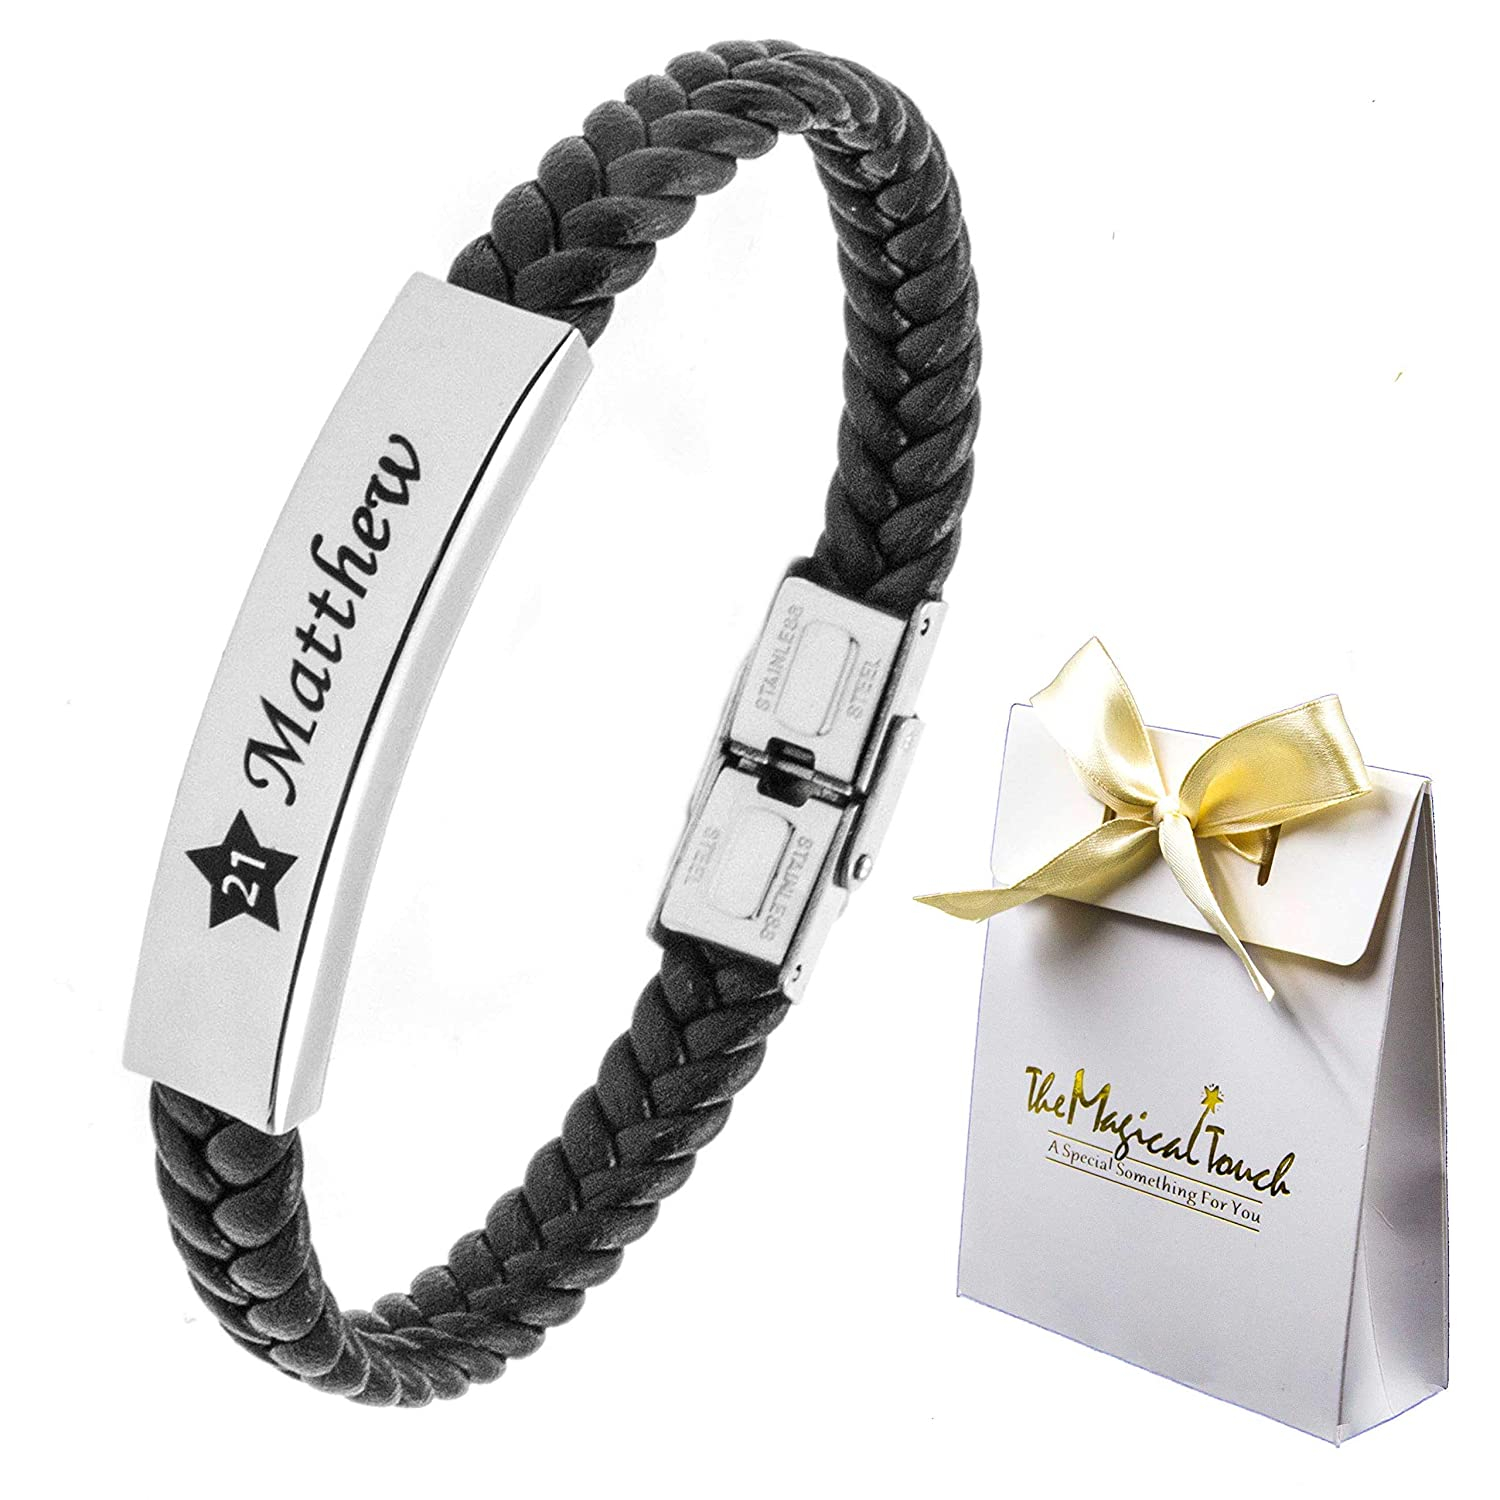 Men/'s hand made leather bracelet,4 sizes,real leather,stainless steel,3 colours